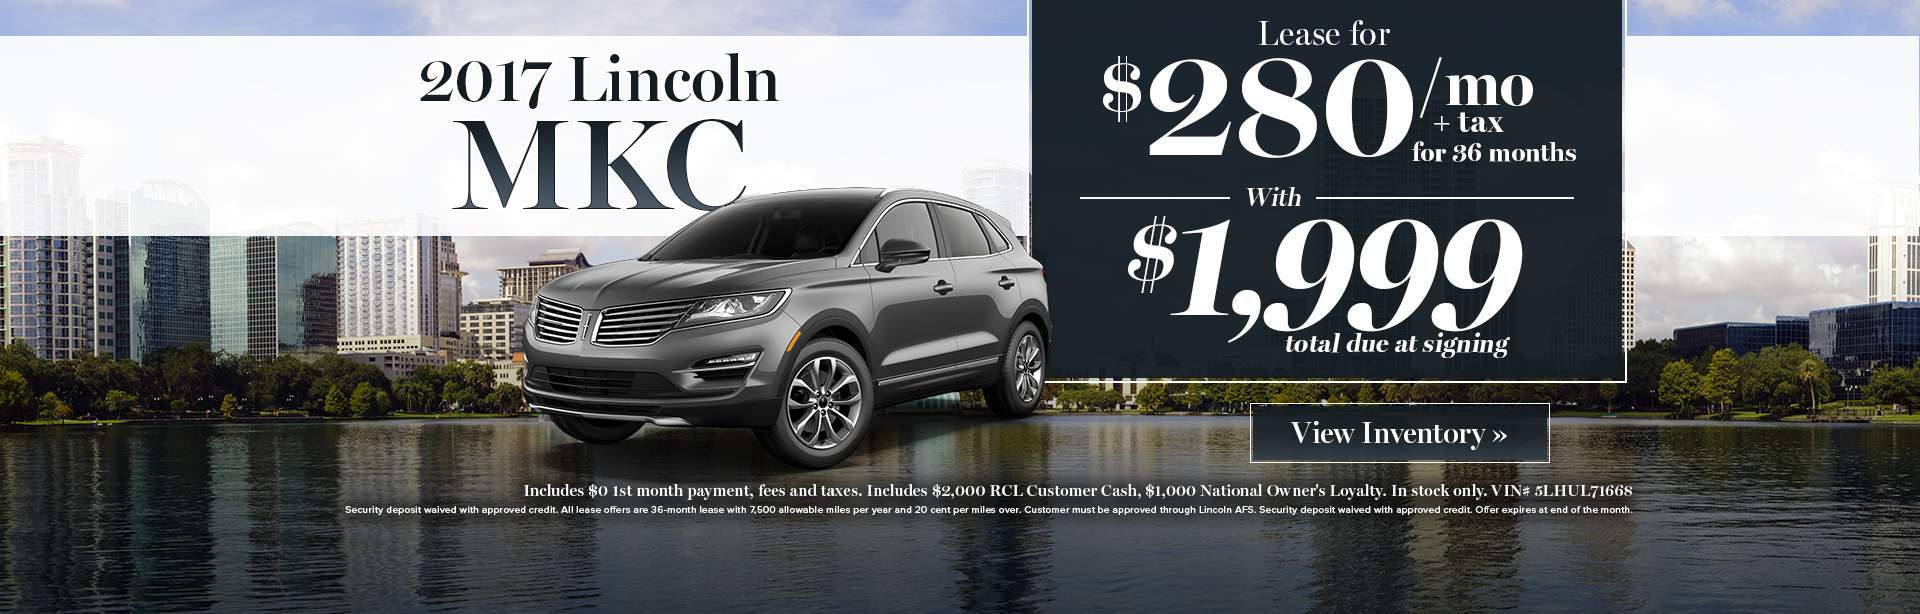 2017 Lincoln MKC lease special